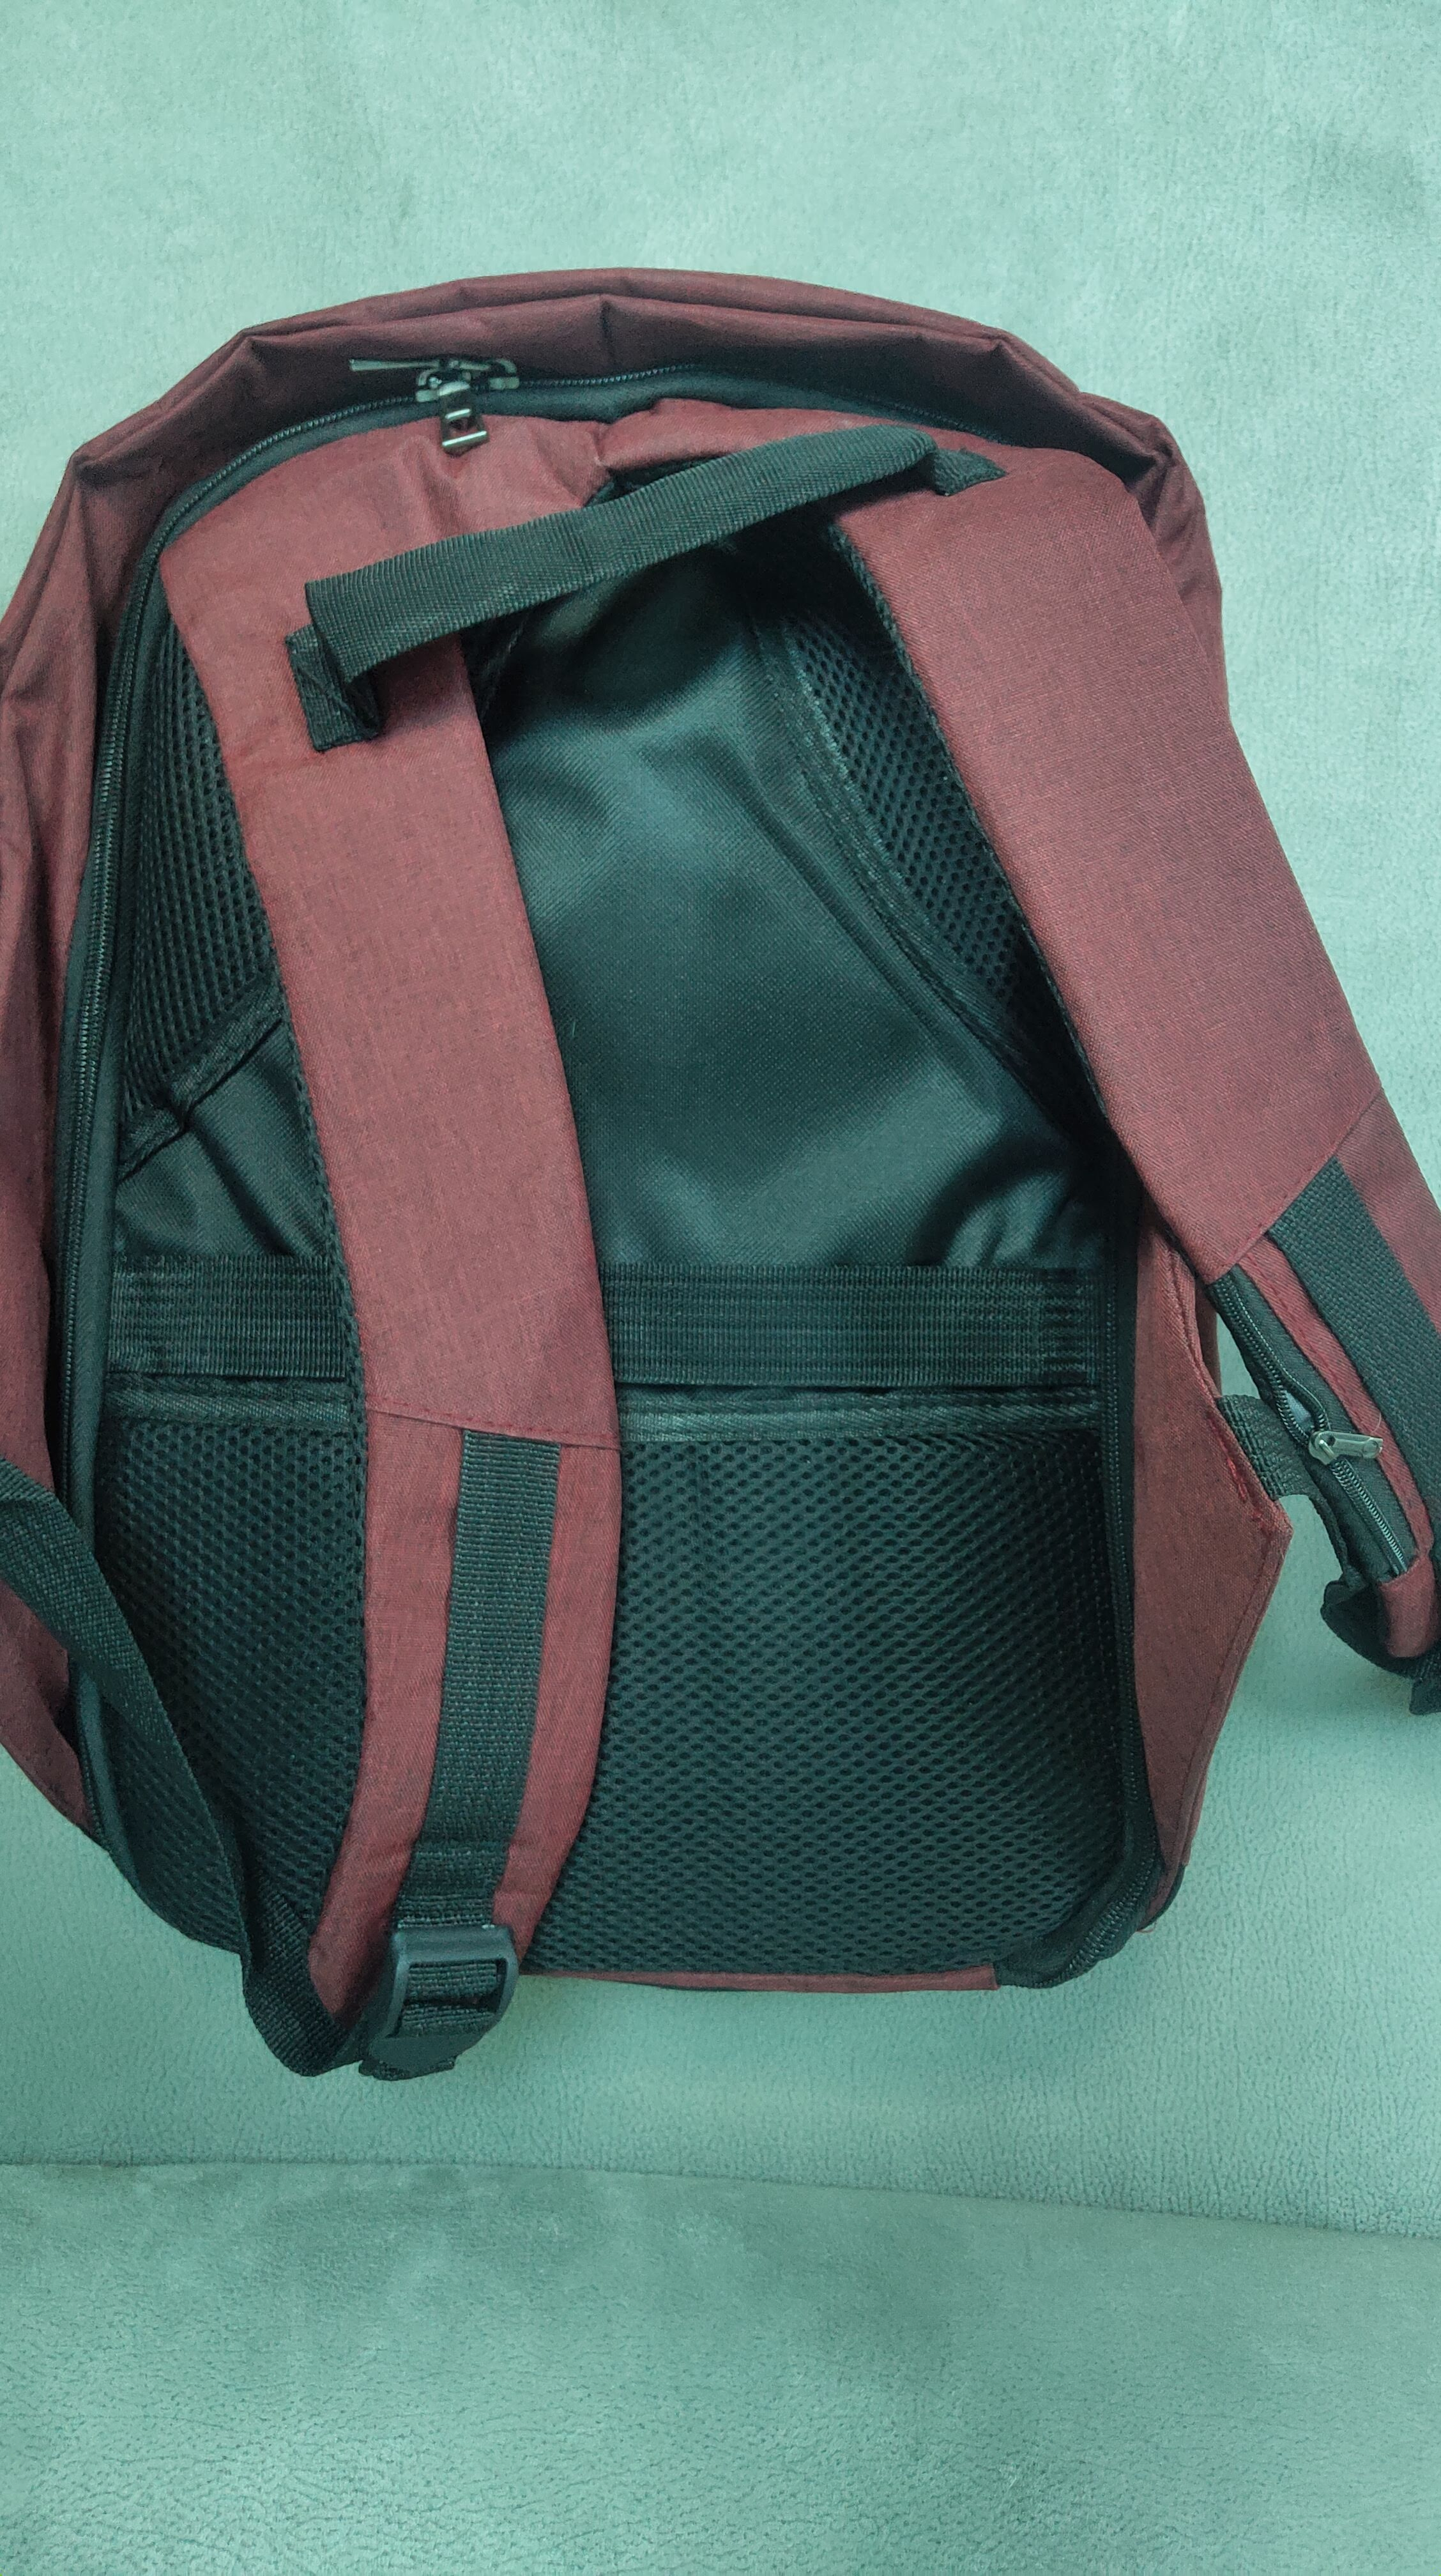 Anti-Theft Waterproof Backpack for 15.6 Inch Laptops photo review